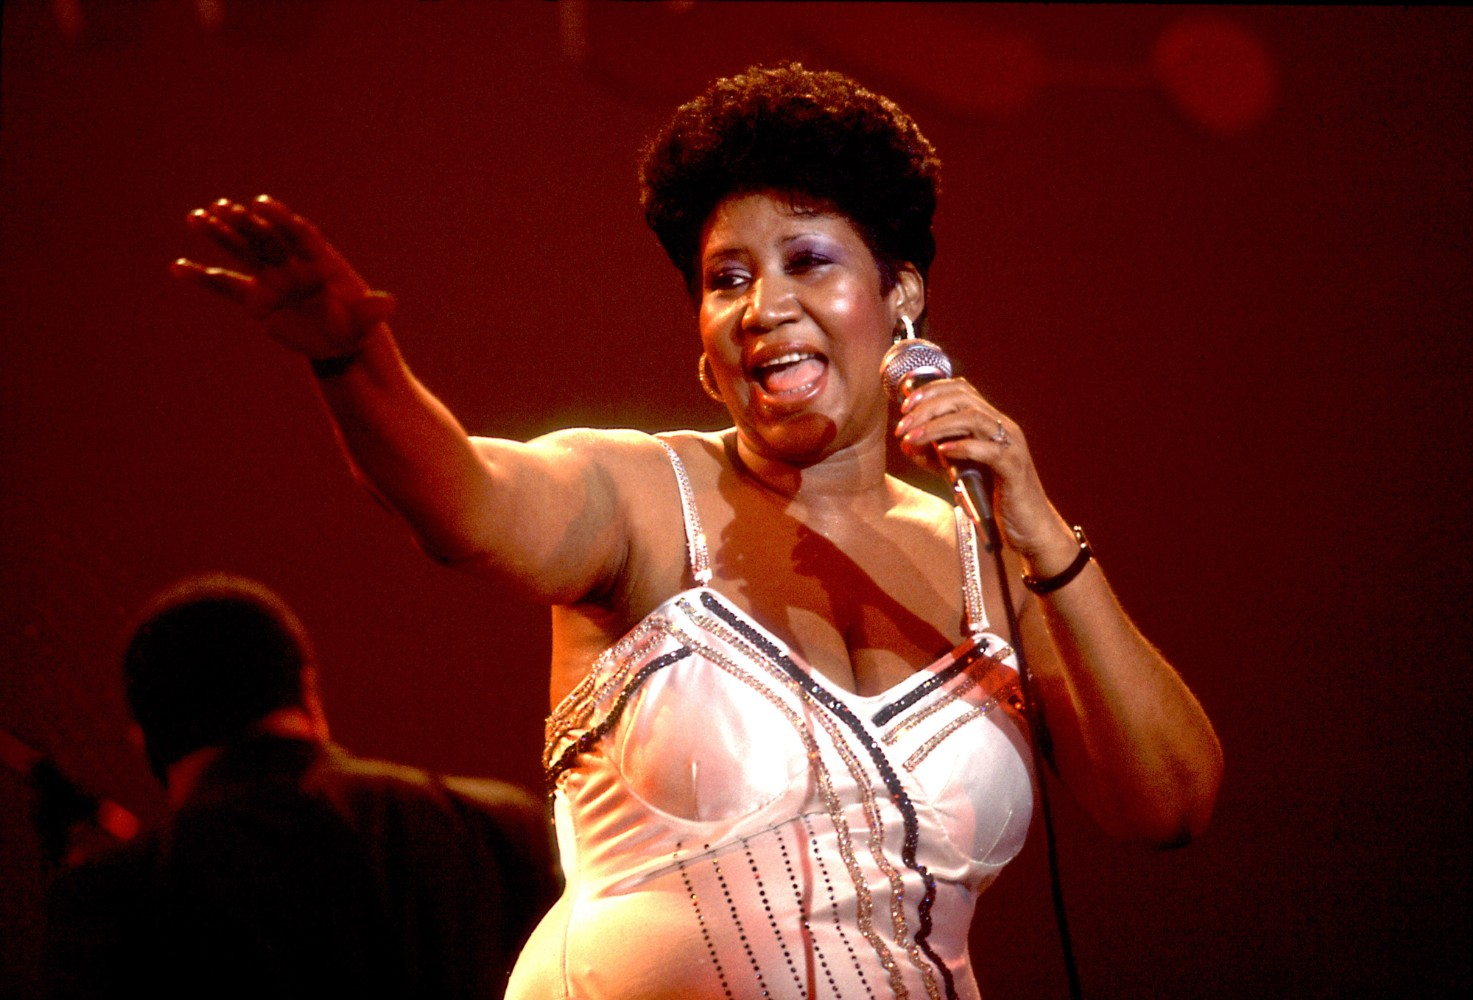 aretha franklin 39 s greatest hits 10 of her best songs spin. Black Bedroom Furniture Sets. Home Design Ideas